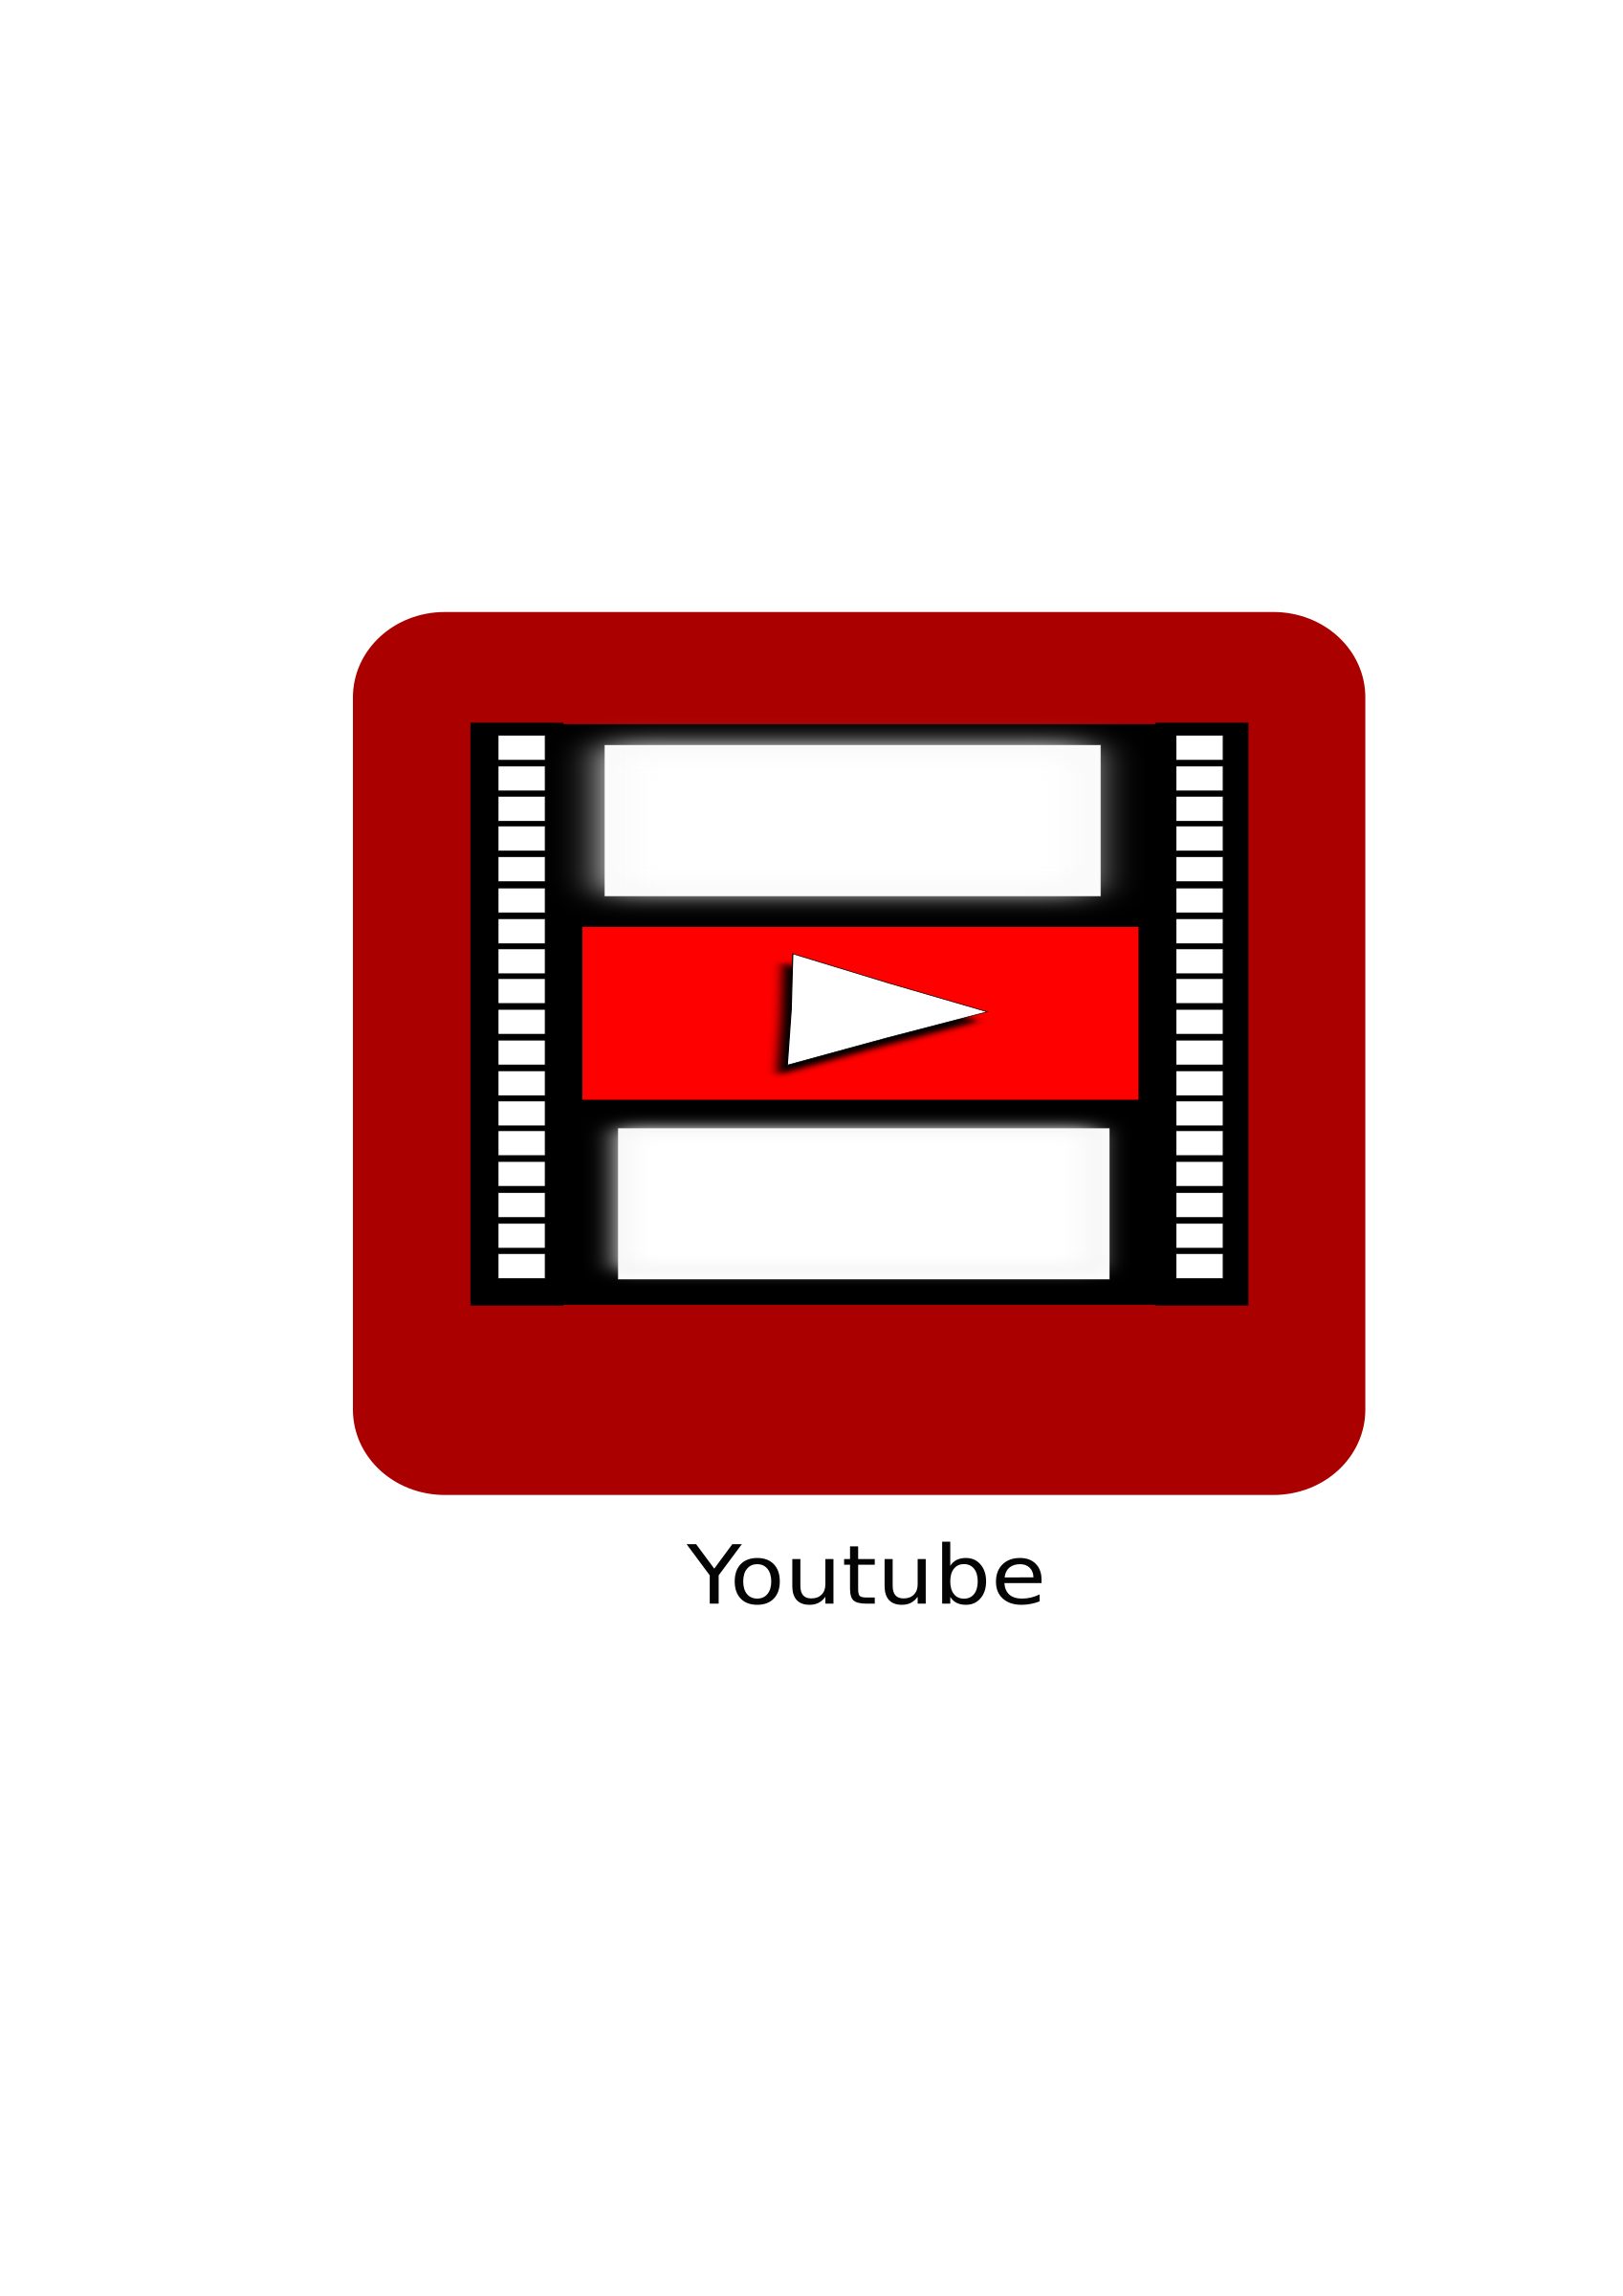 youtube by mikymusil